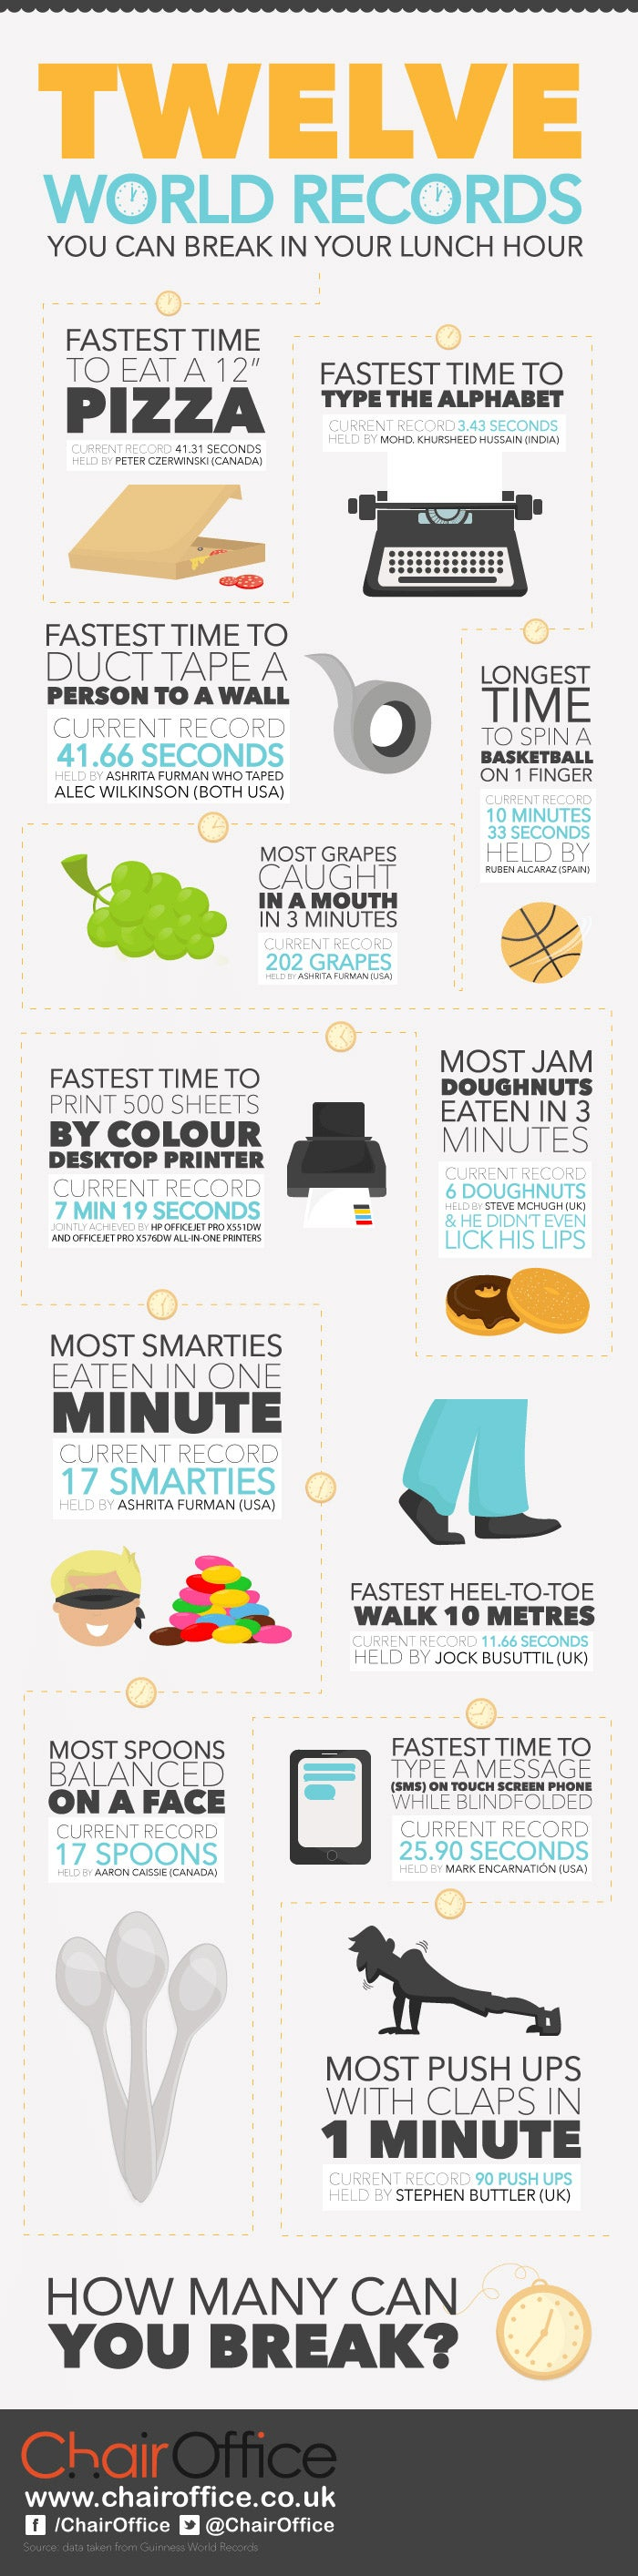 12 World Records You Can Break During Your Lunch Break (Infographic)